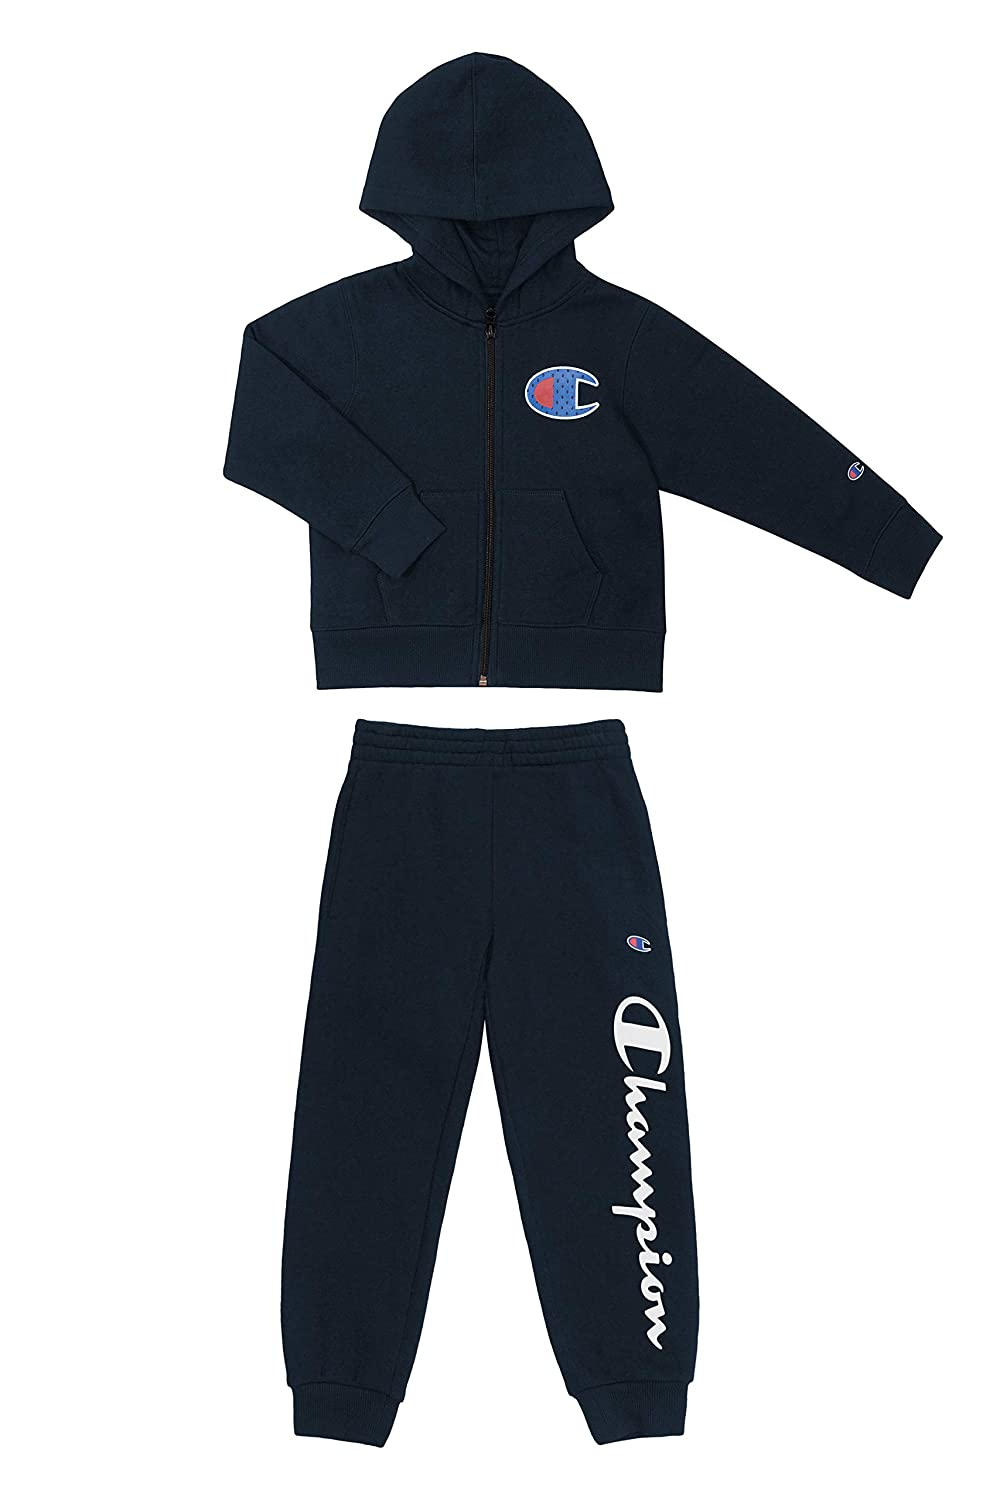 Champion Boys Hertiage 2-7 Two Piece Hooded Fleece Pant Sport Sets